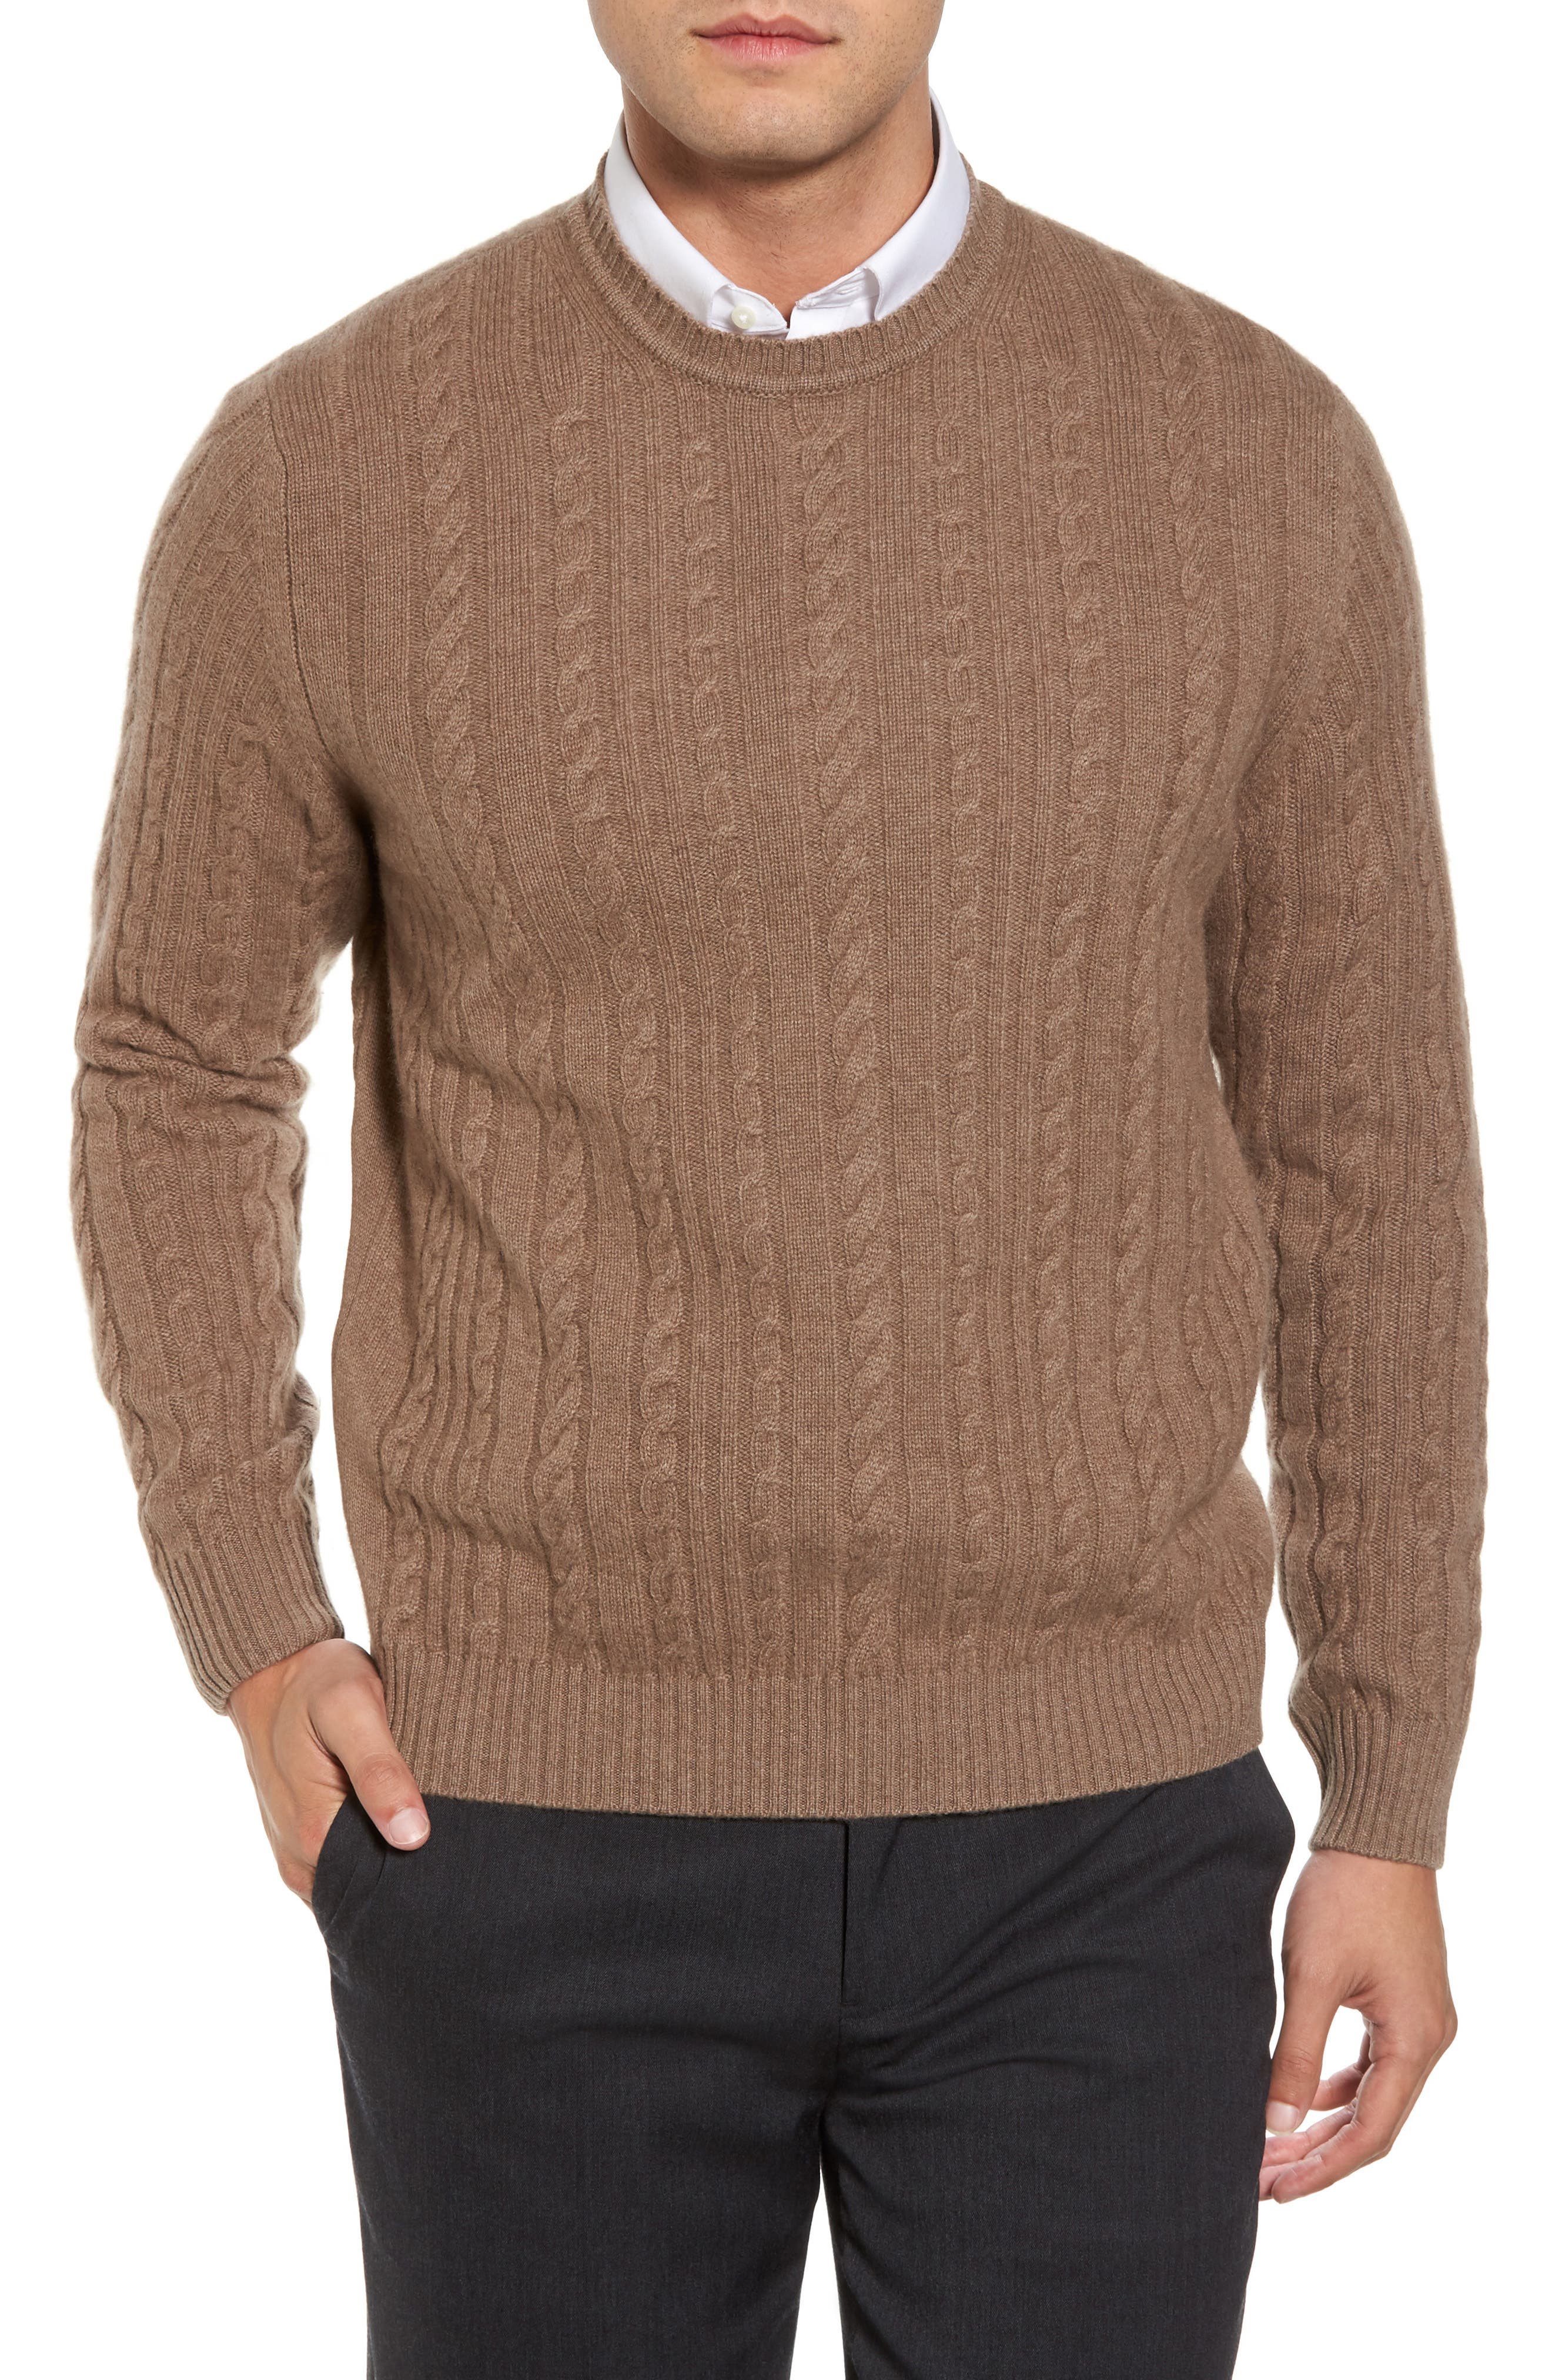 Alternate Image 1 Selected - David Donahue Cable Knit Cashmere Sweater